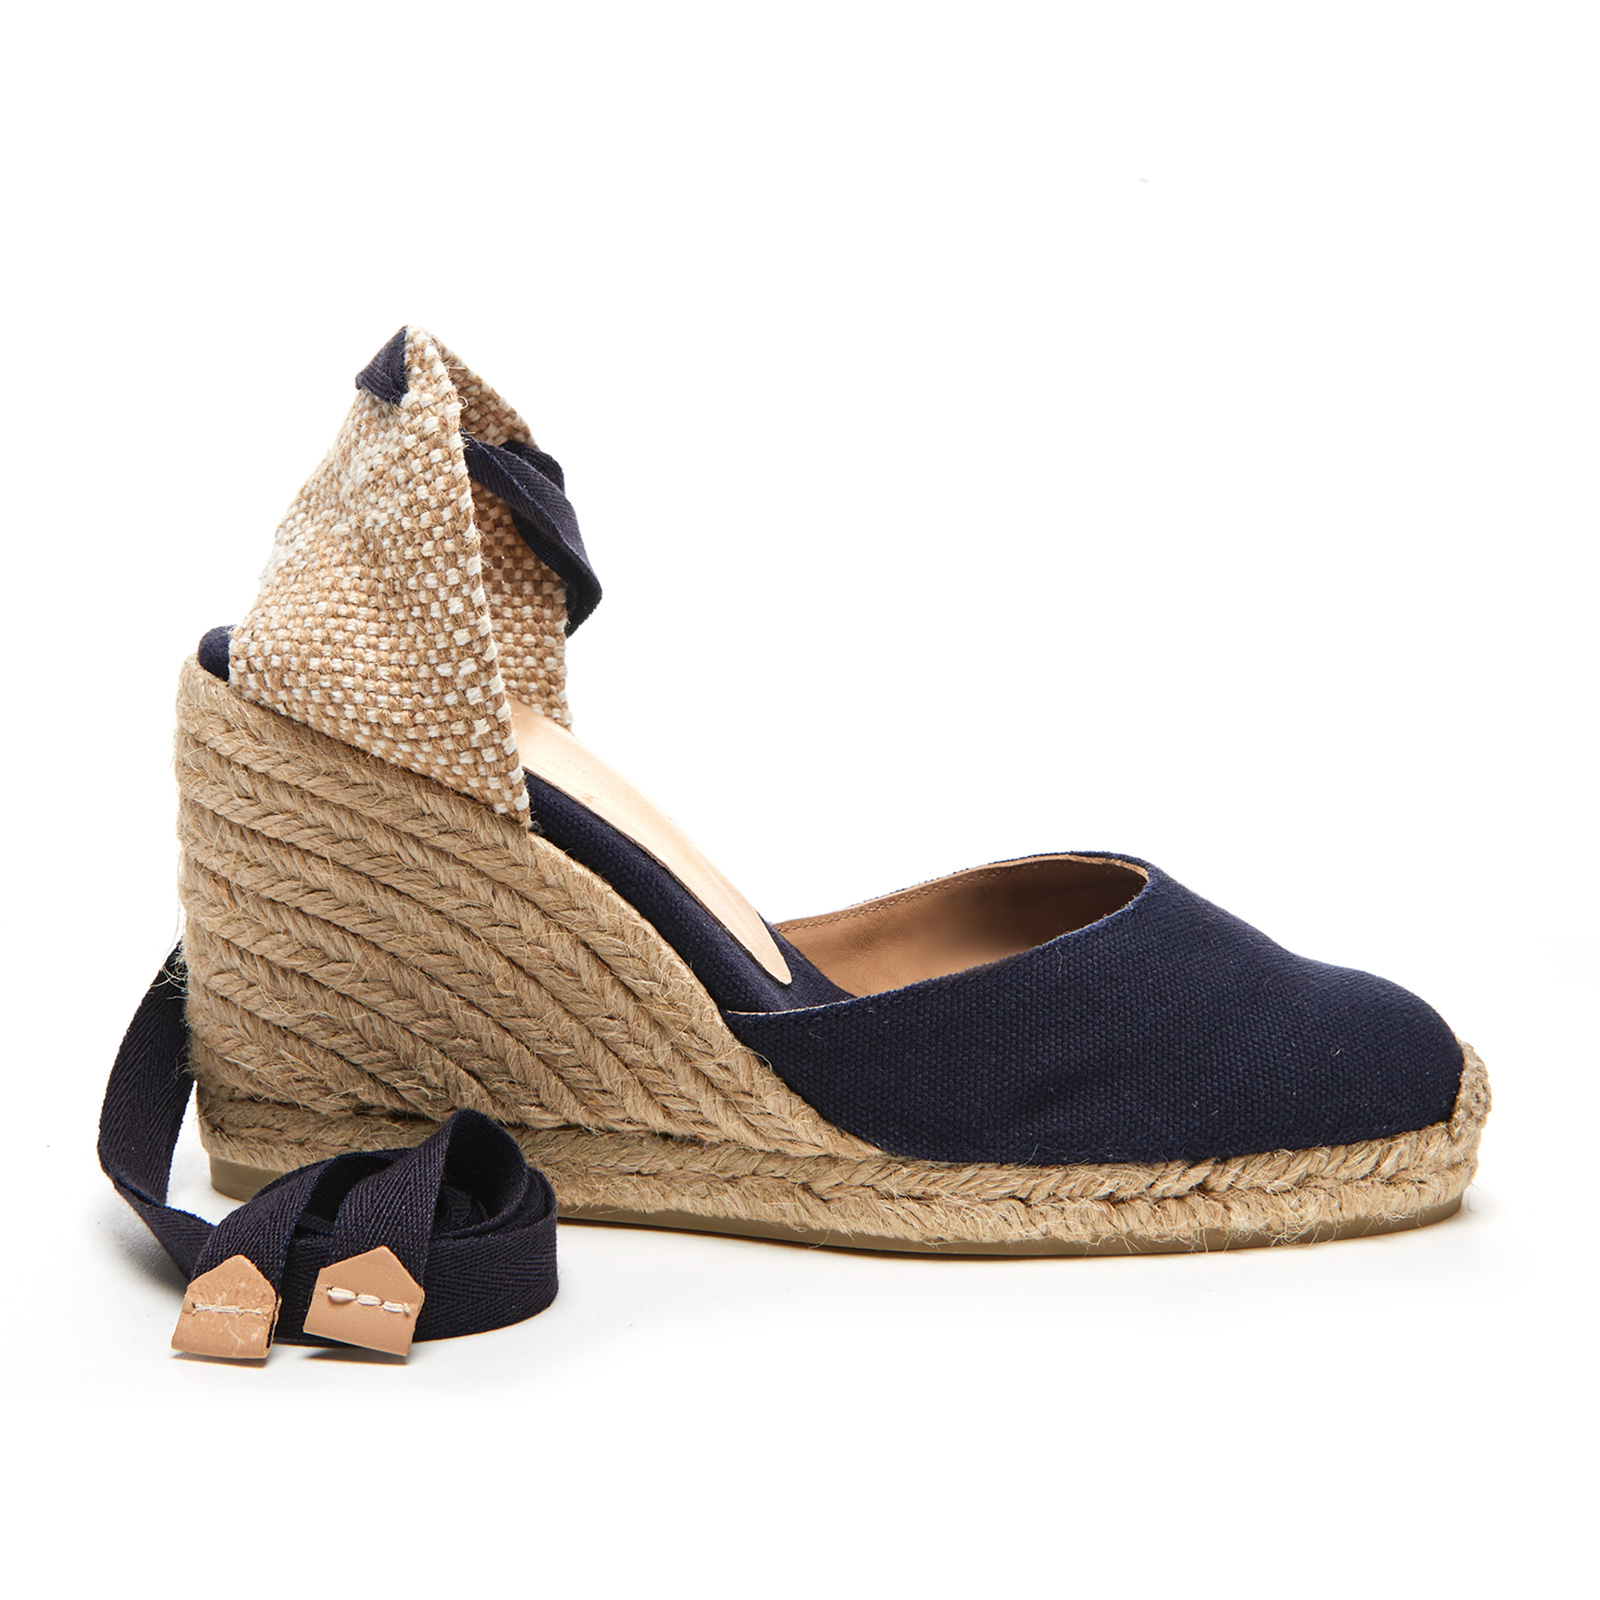 2df95bae53ff Castaner Women s Carina Wedged Espadille Sandals - Marino - Free UK  Delivery over £50